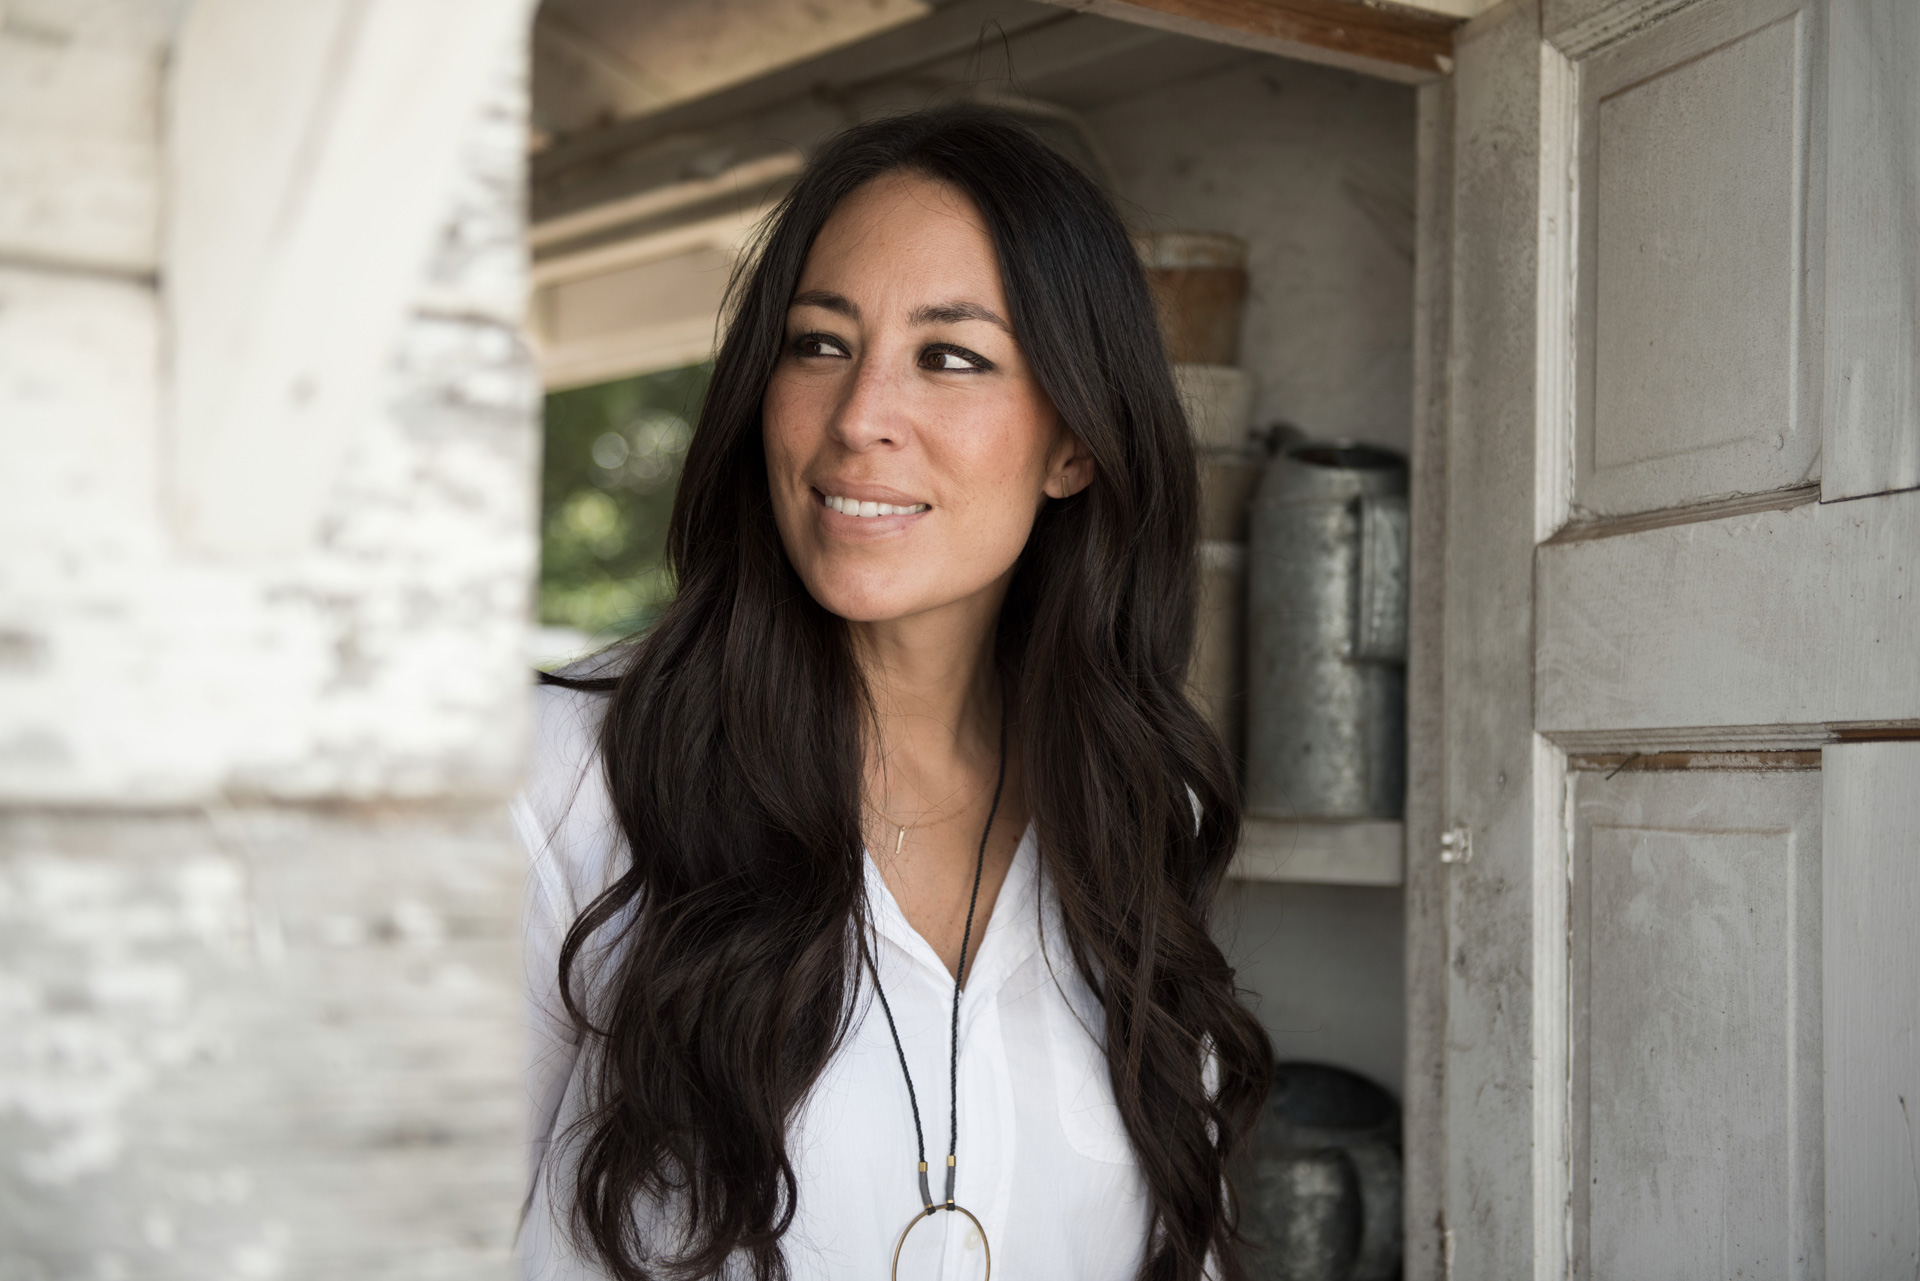 Joanna Gaines Looking Out a Window